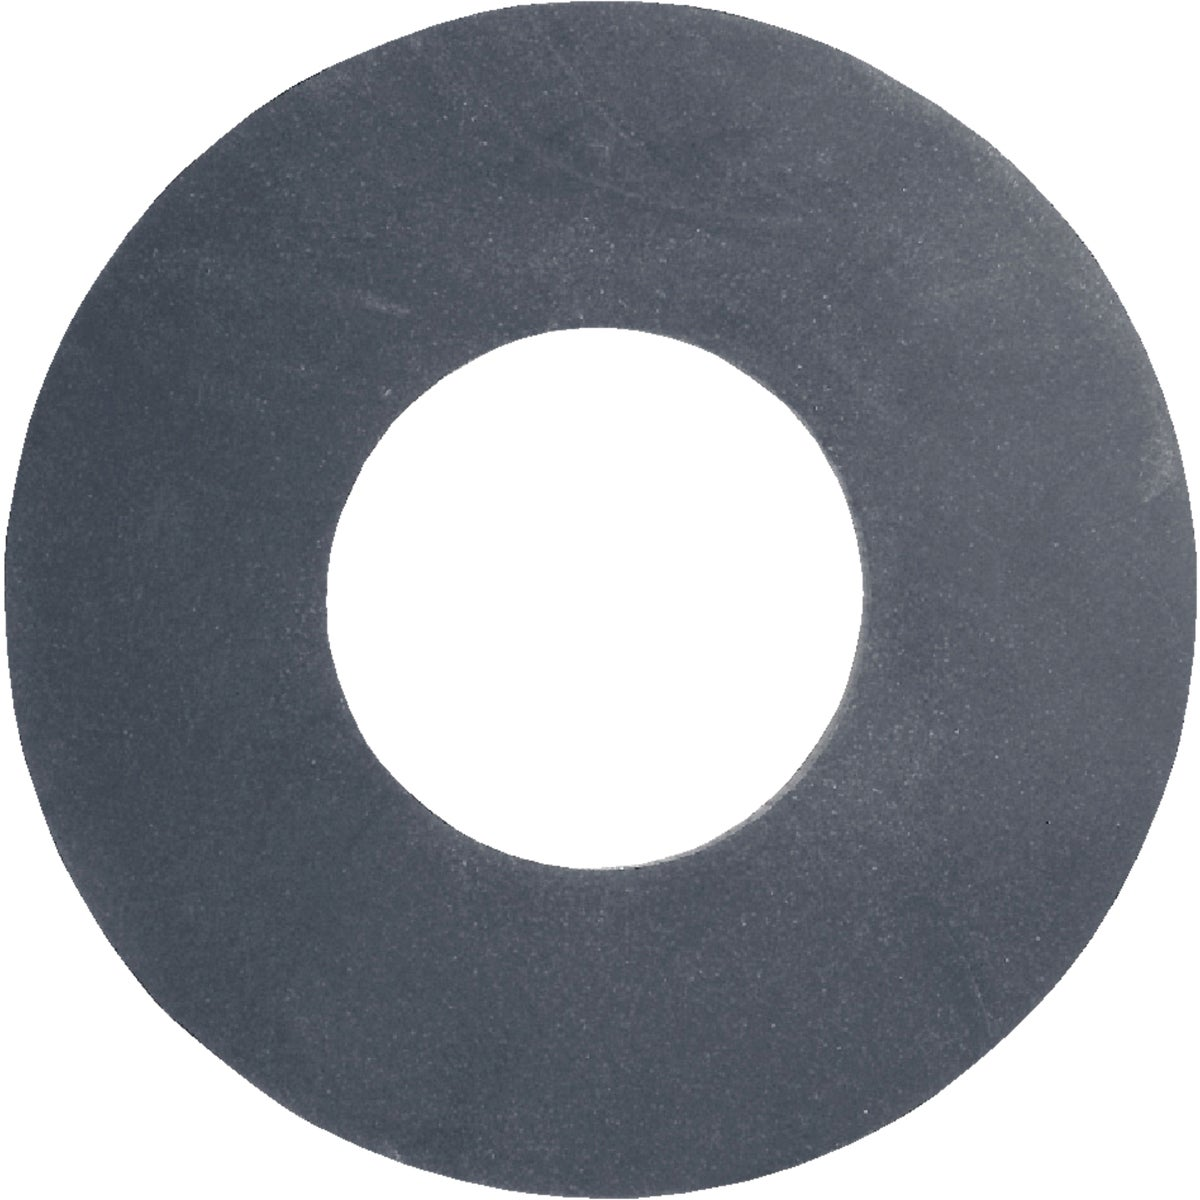 "2-1/4""OD WASHER - 61274B by Danco Perfect Match"